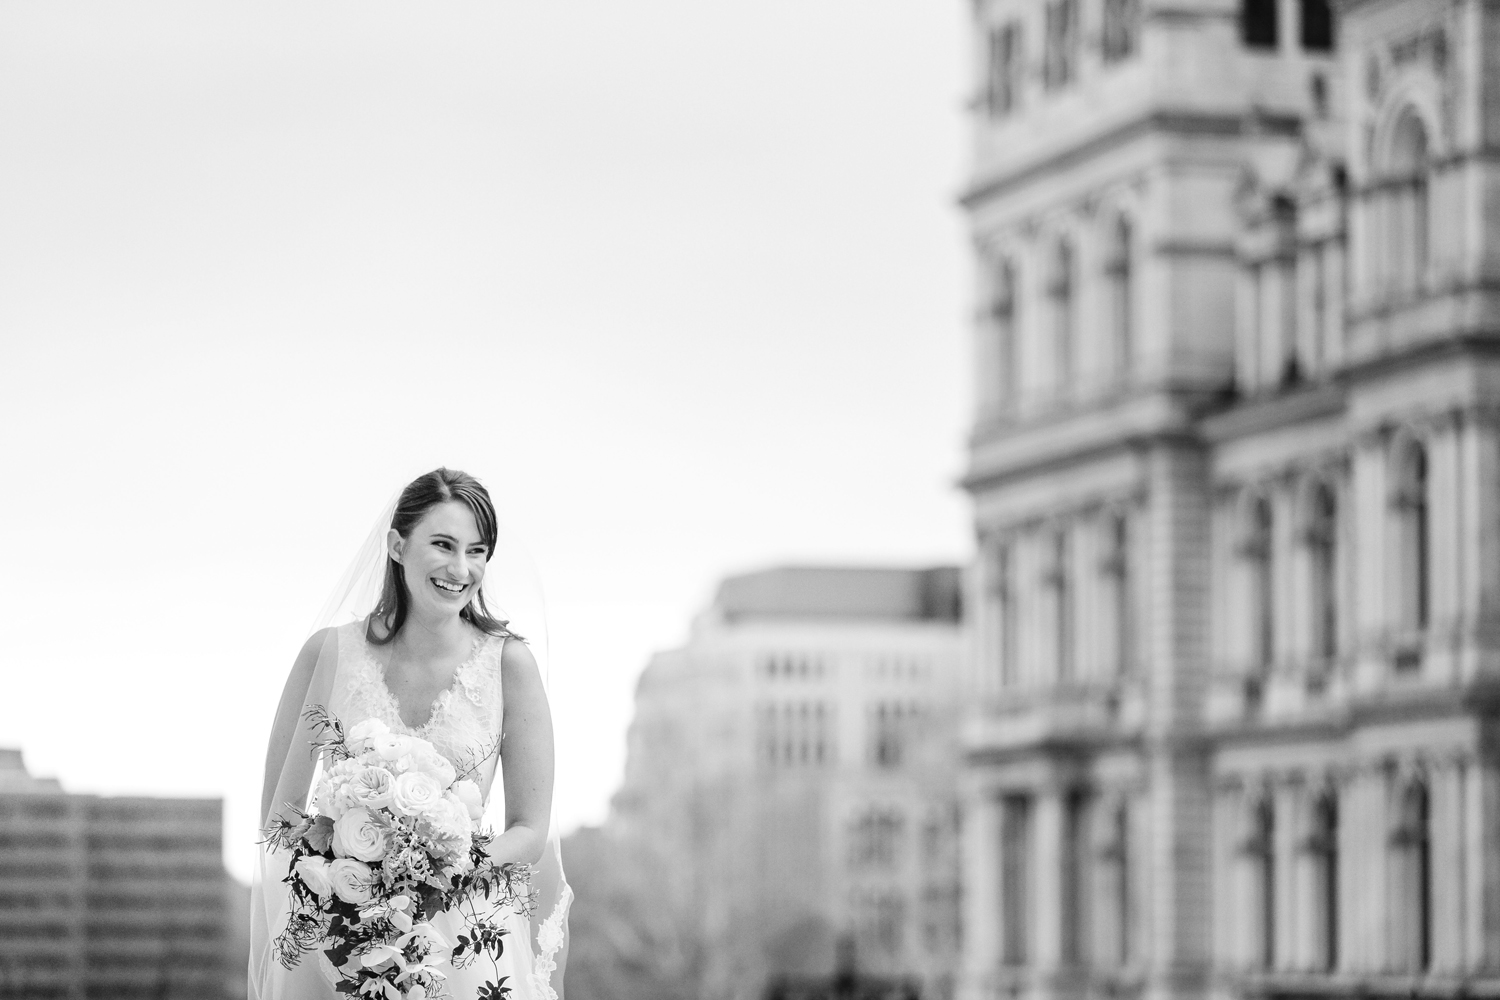 albany ny wedding photographer21.jpg